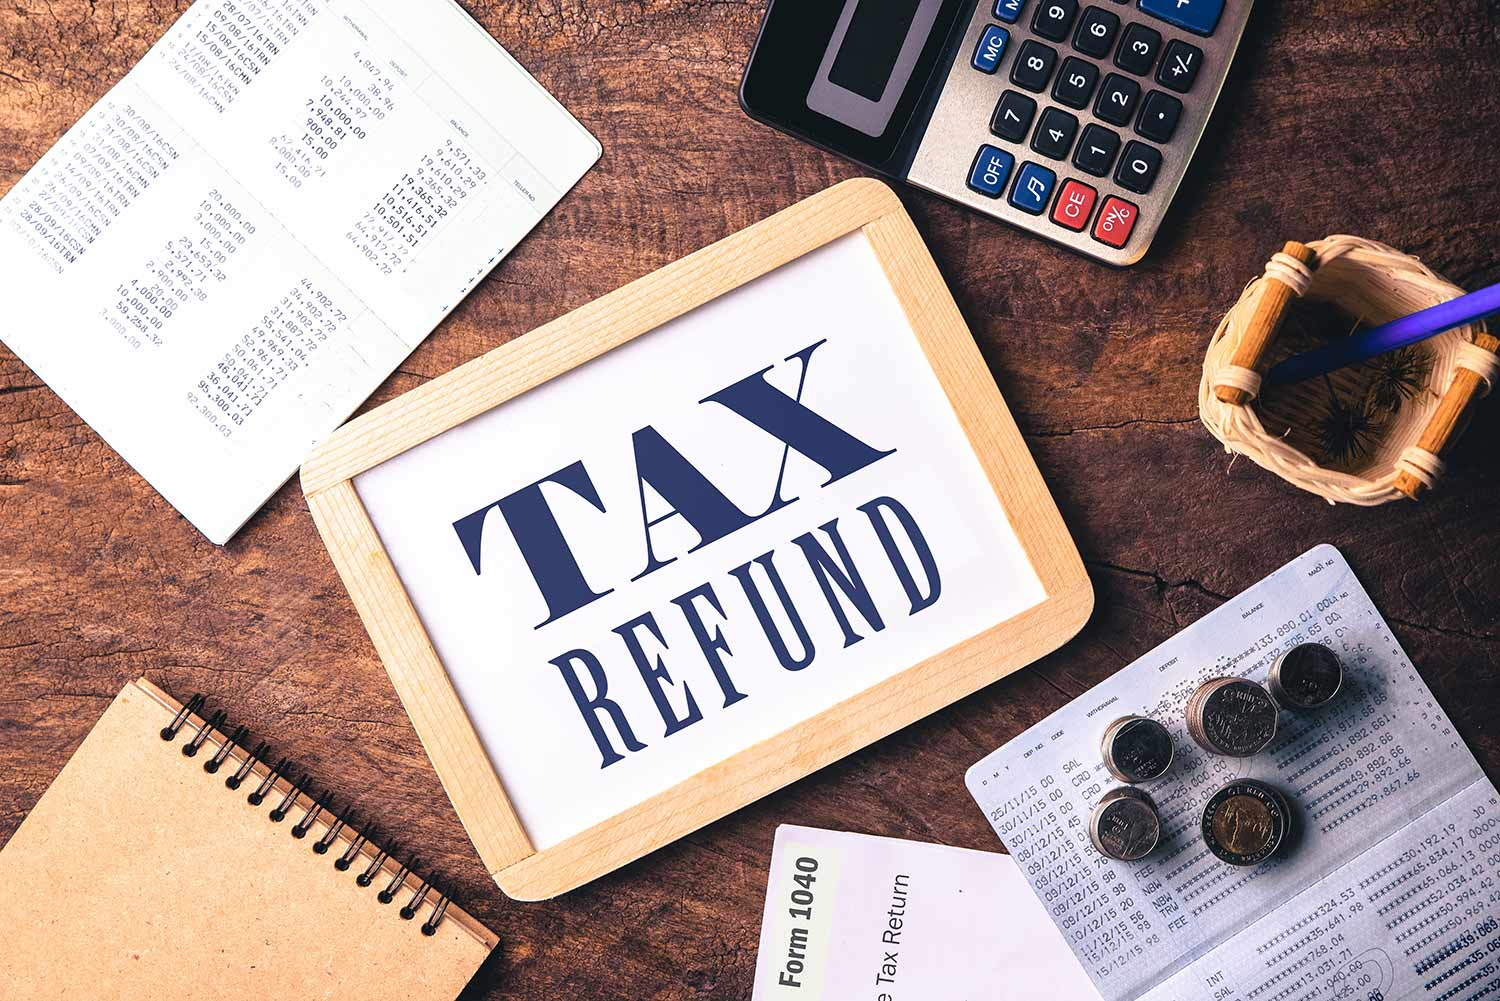 Make best use of your tax refund